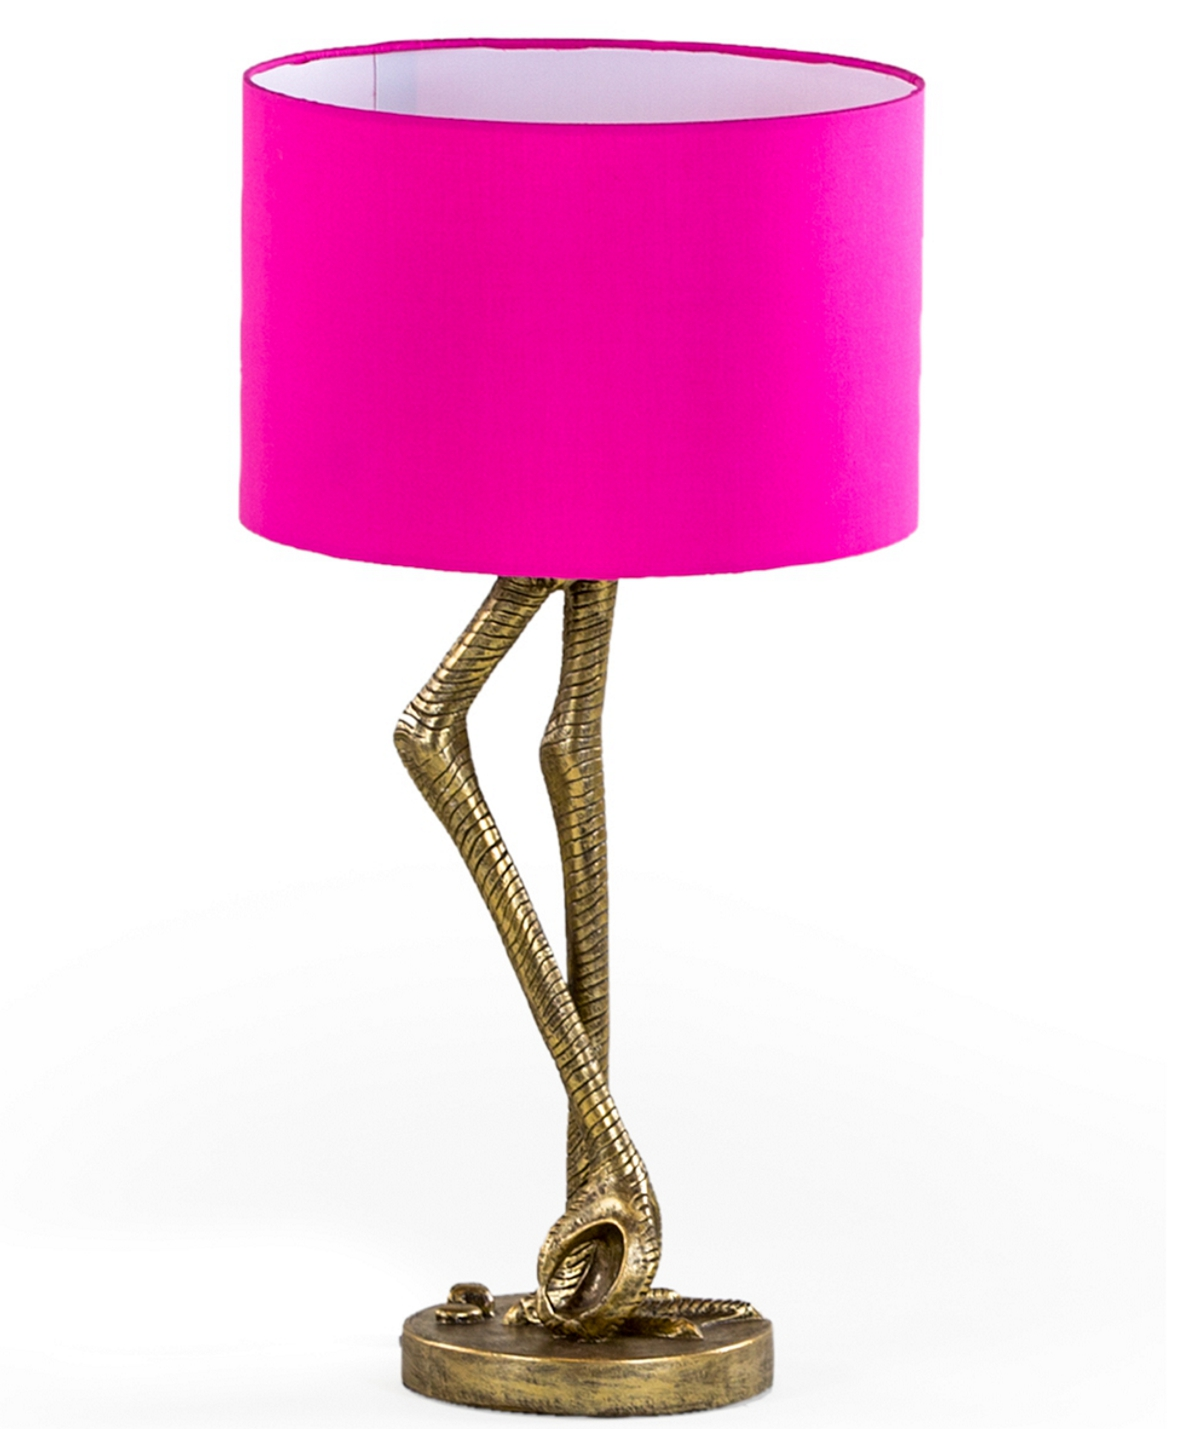 Antique Gold Flamingo Leg Table Lamp Pink Shade H60 x W31 x D31cm